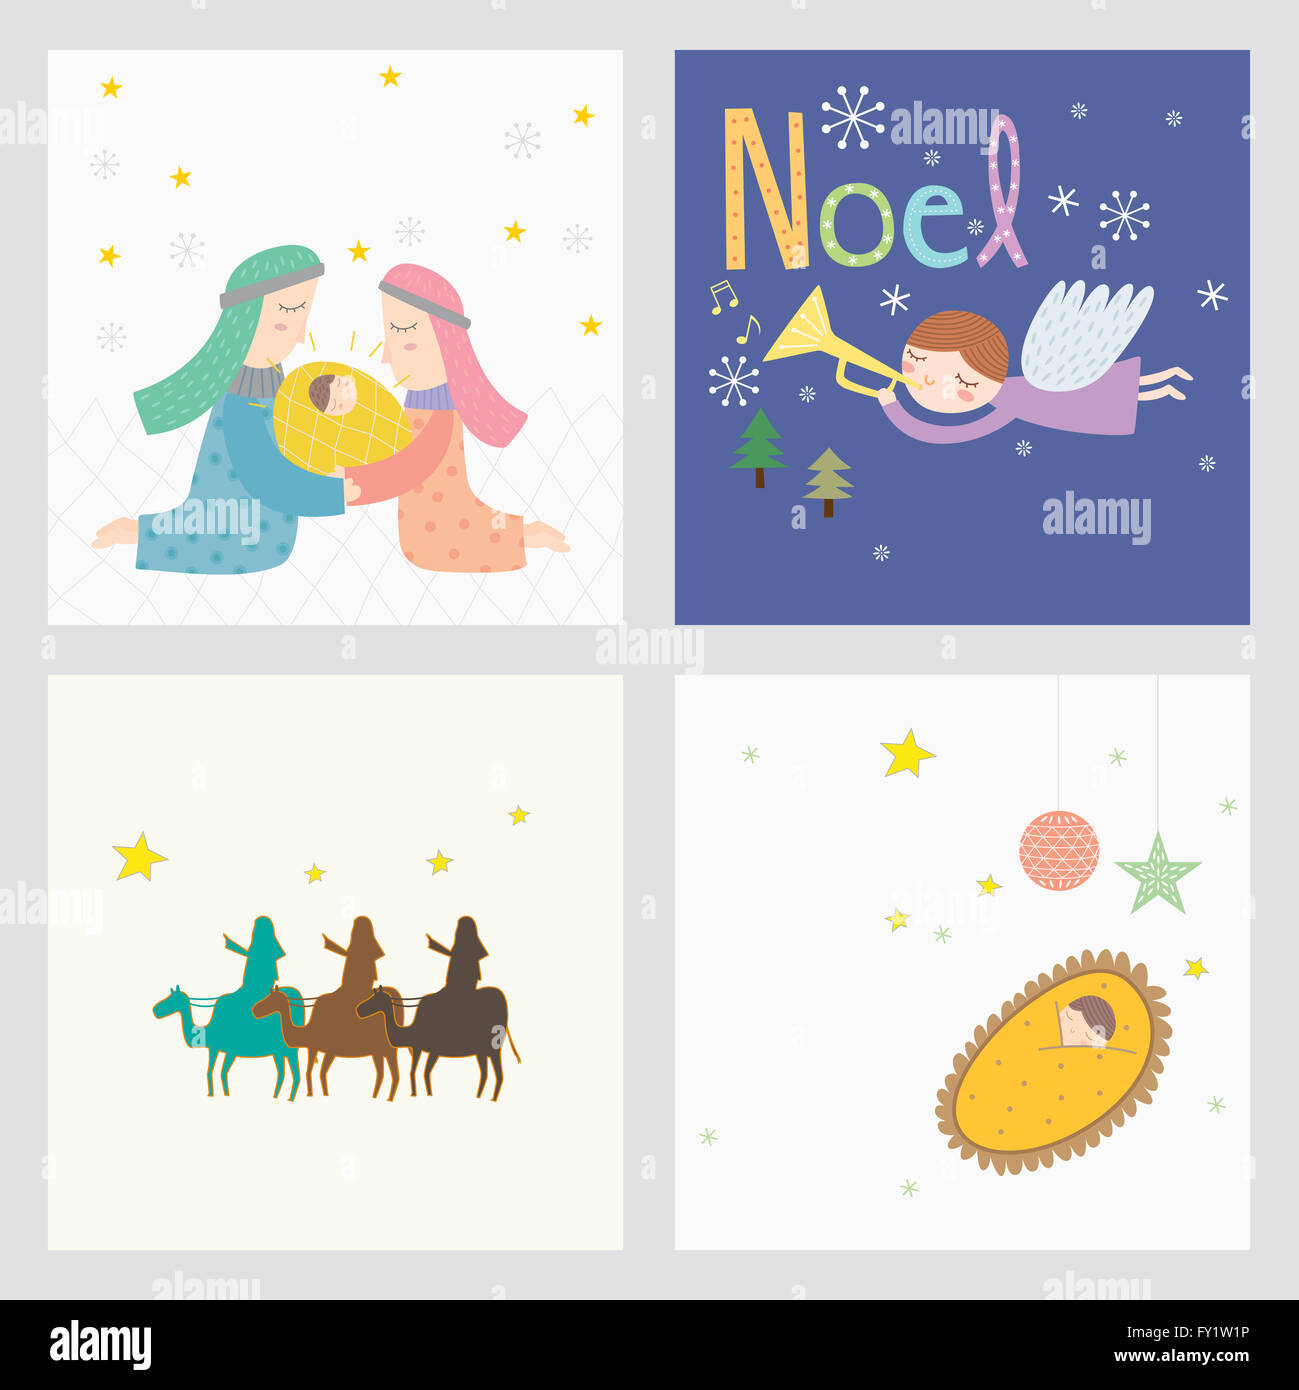 Card design with images representing Christmas and the birth of ...